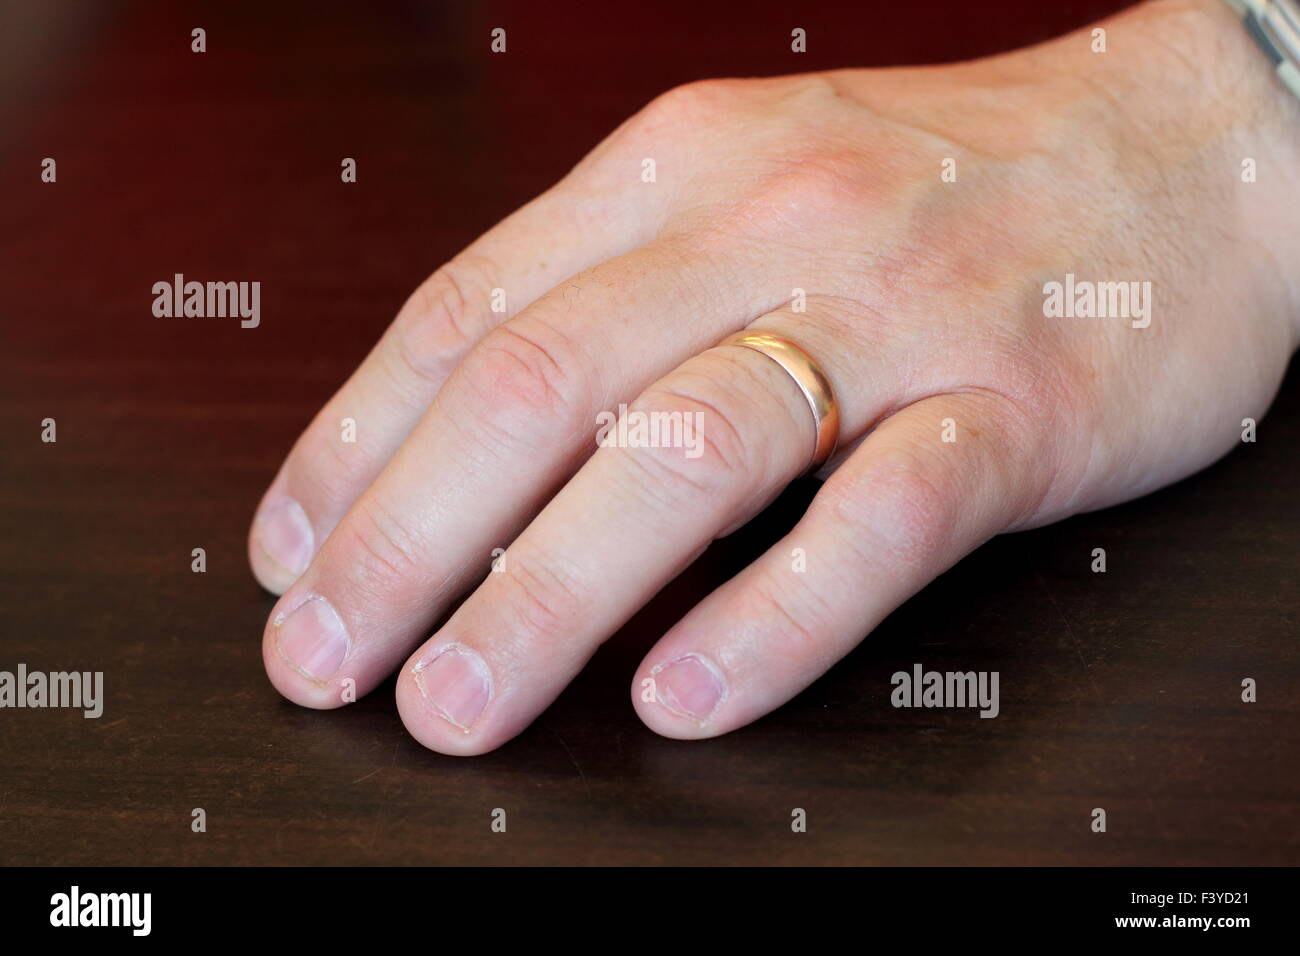 Adult male left hand on a wooden table - Stock Image